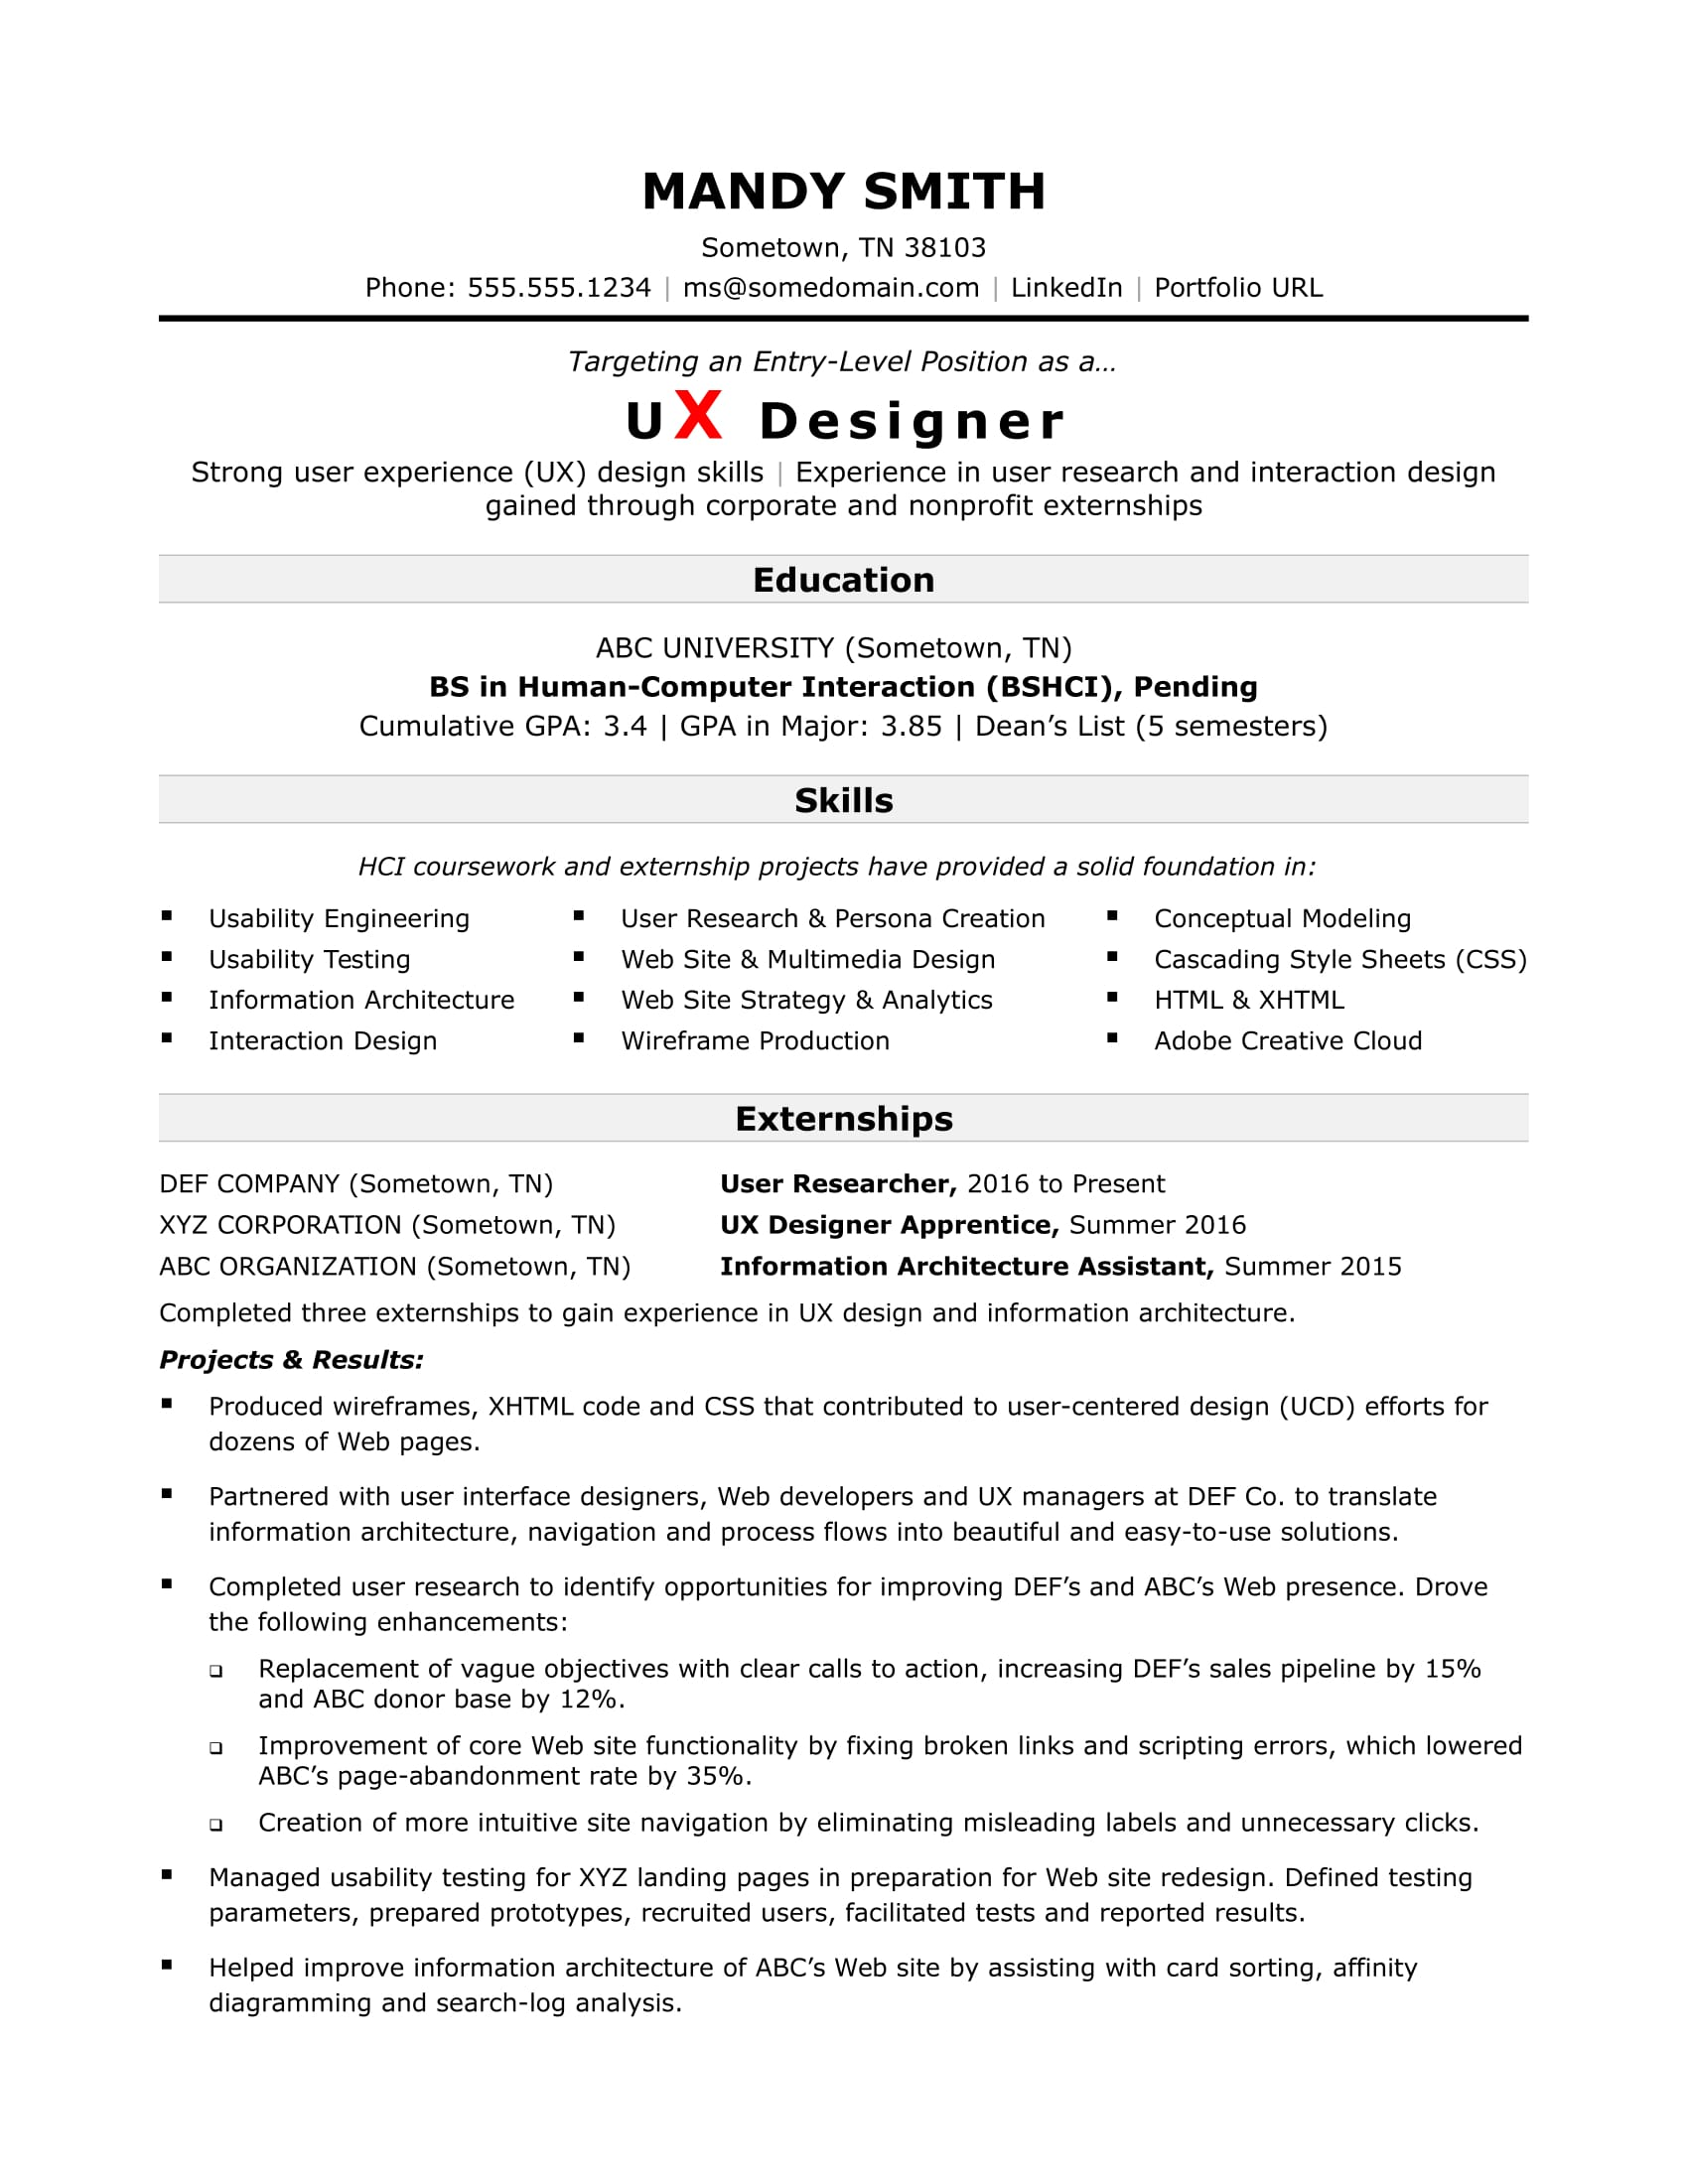 sample resume for entry level web designer